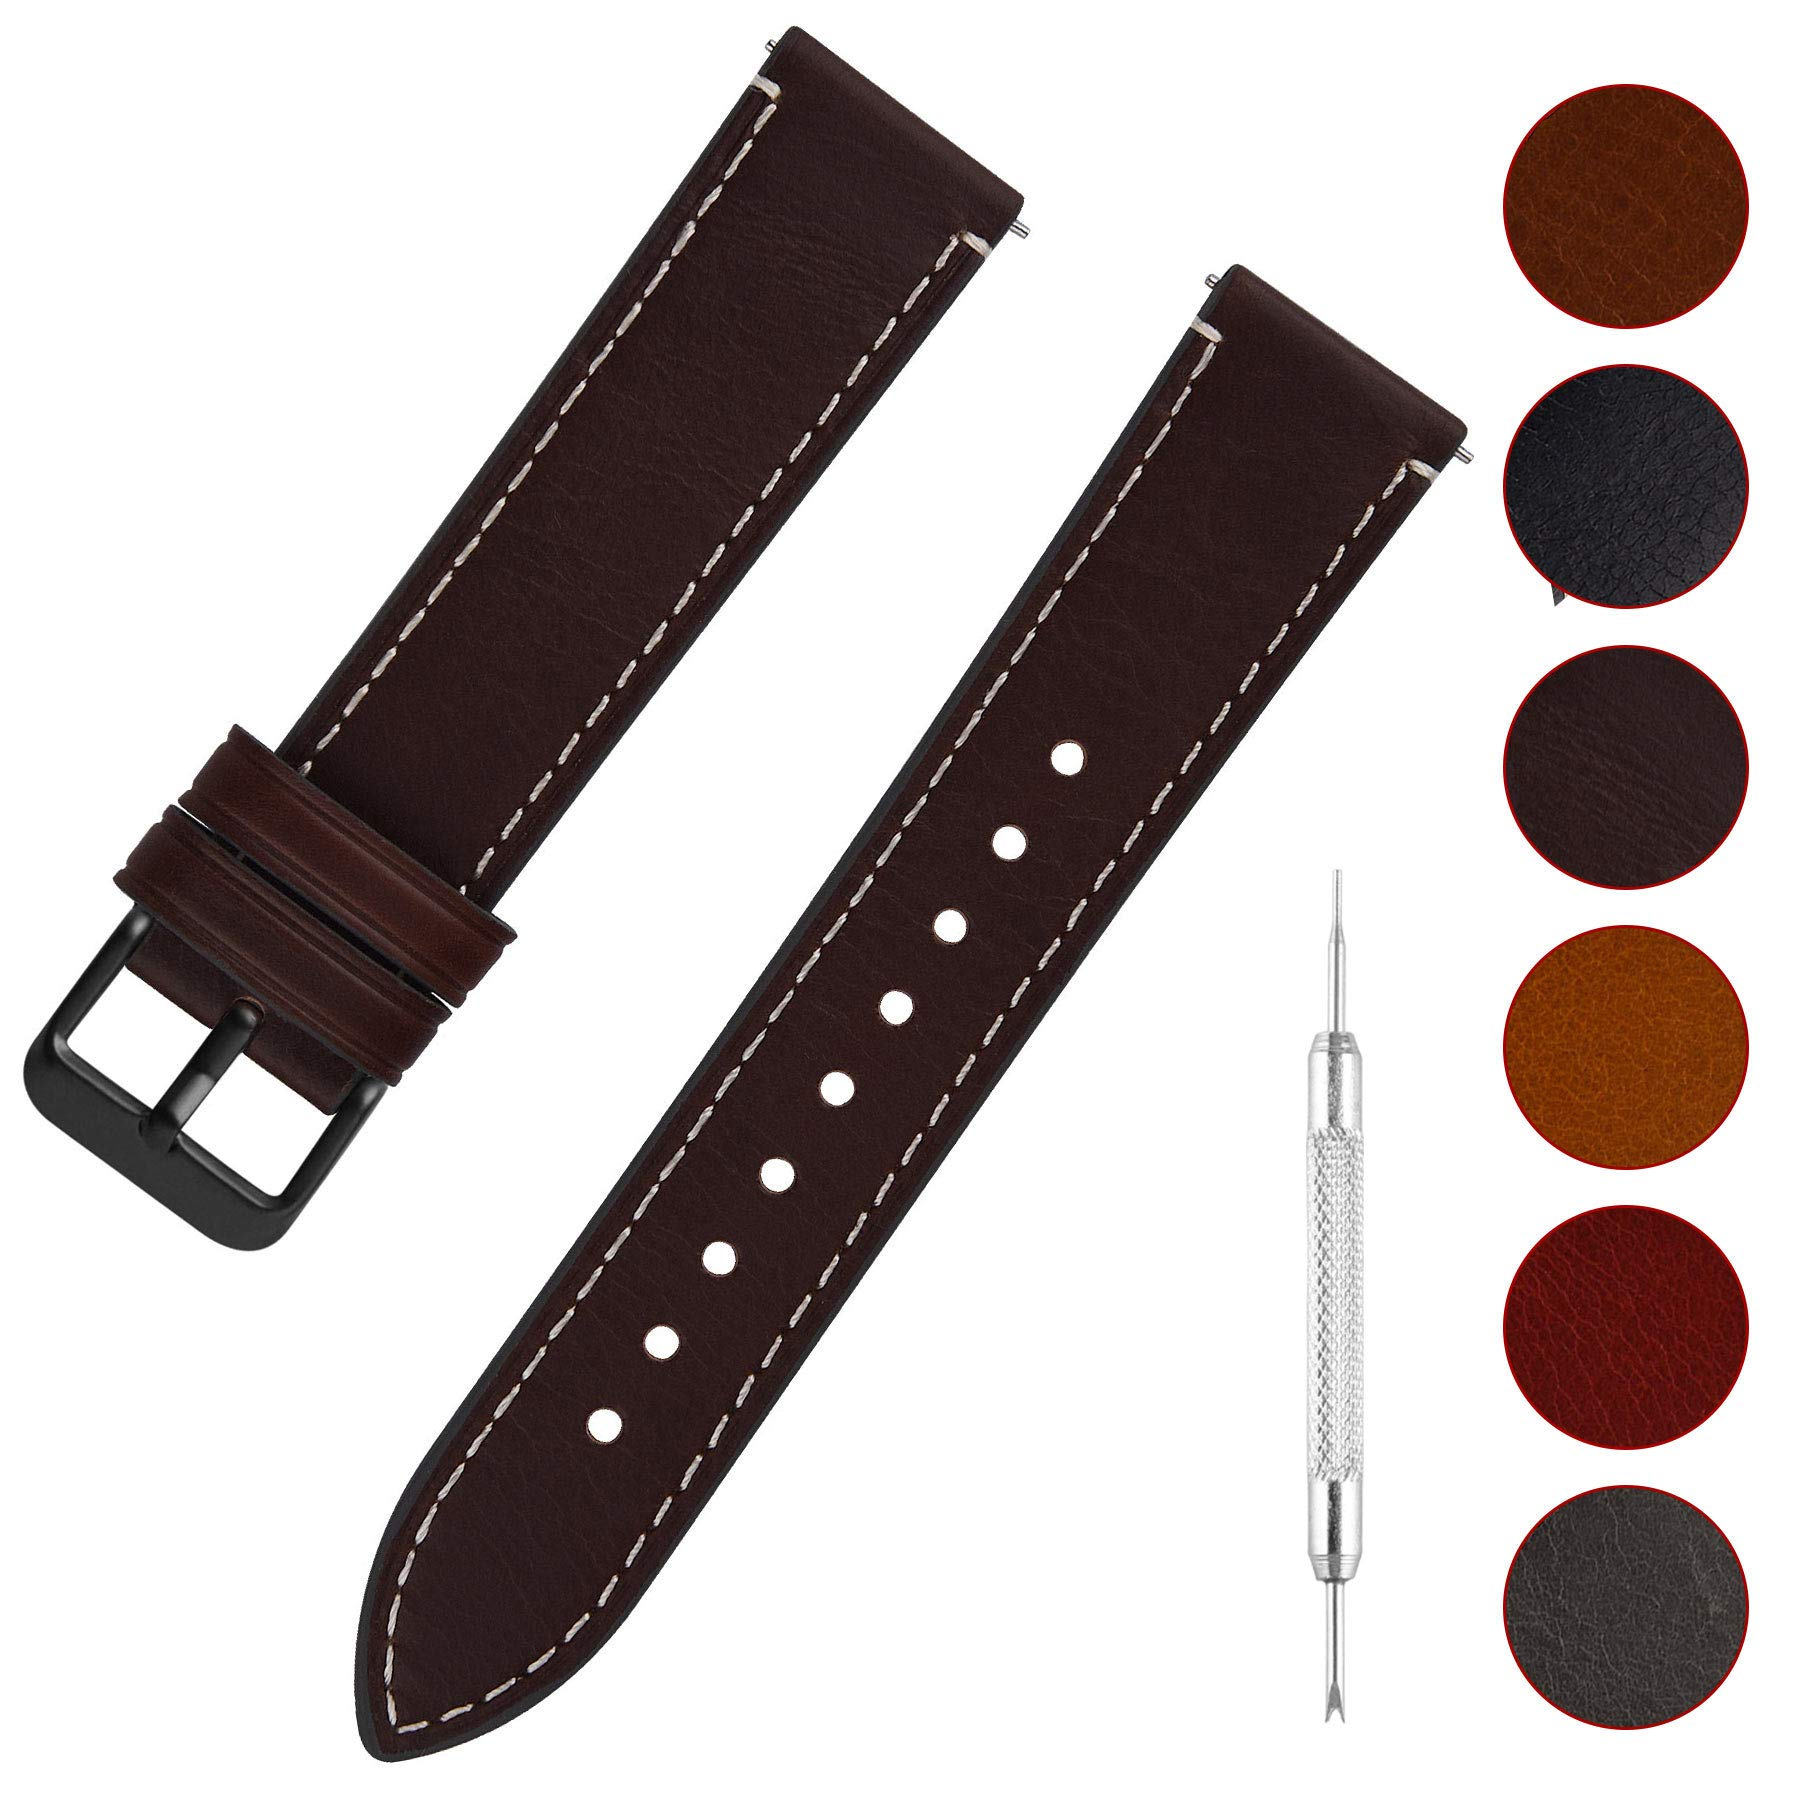 Quick Release Leather Watch Band Fullmosa 6 Colors Wax Oil 14mm 16mm 18mm 20mm 22mm 24mm Leather Watch Strap